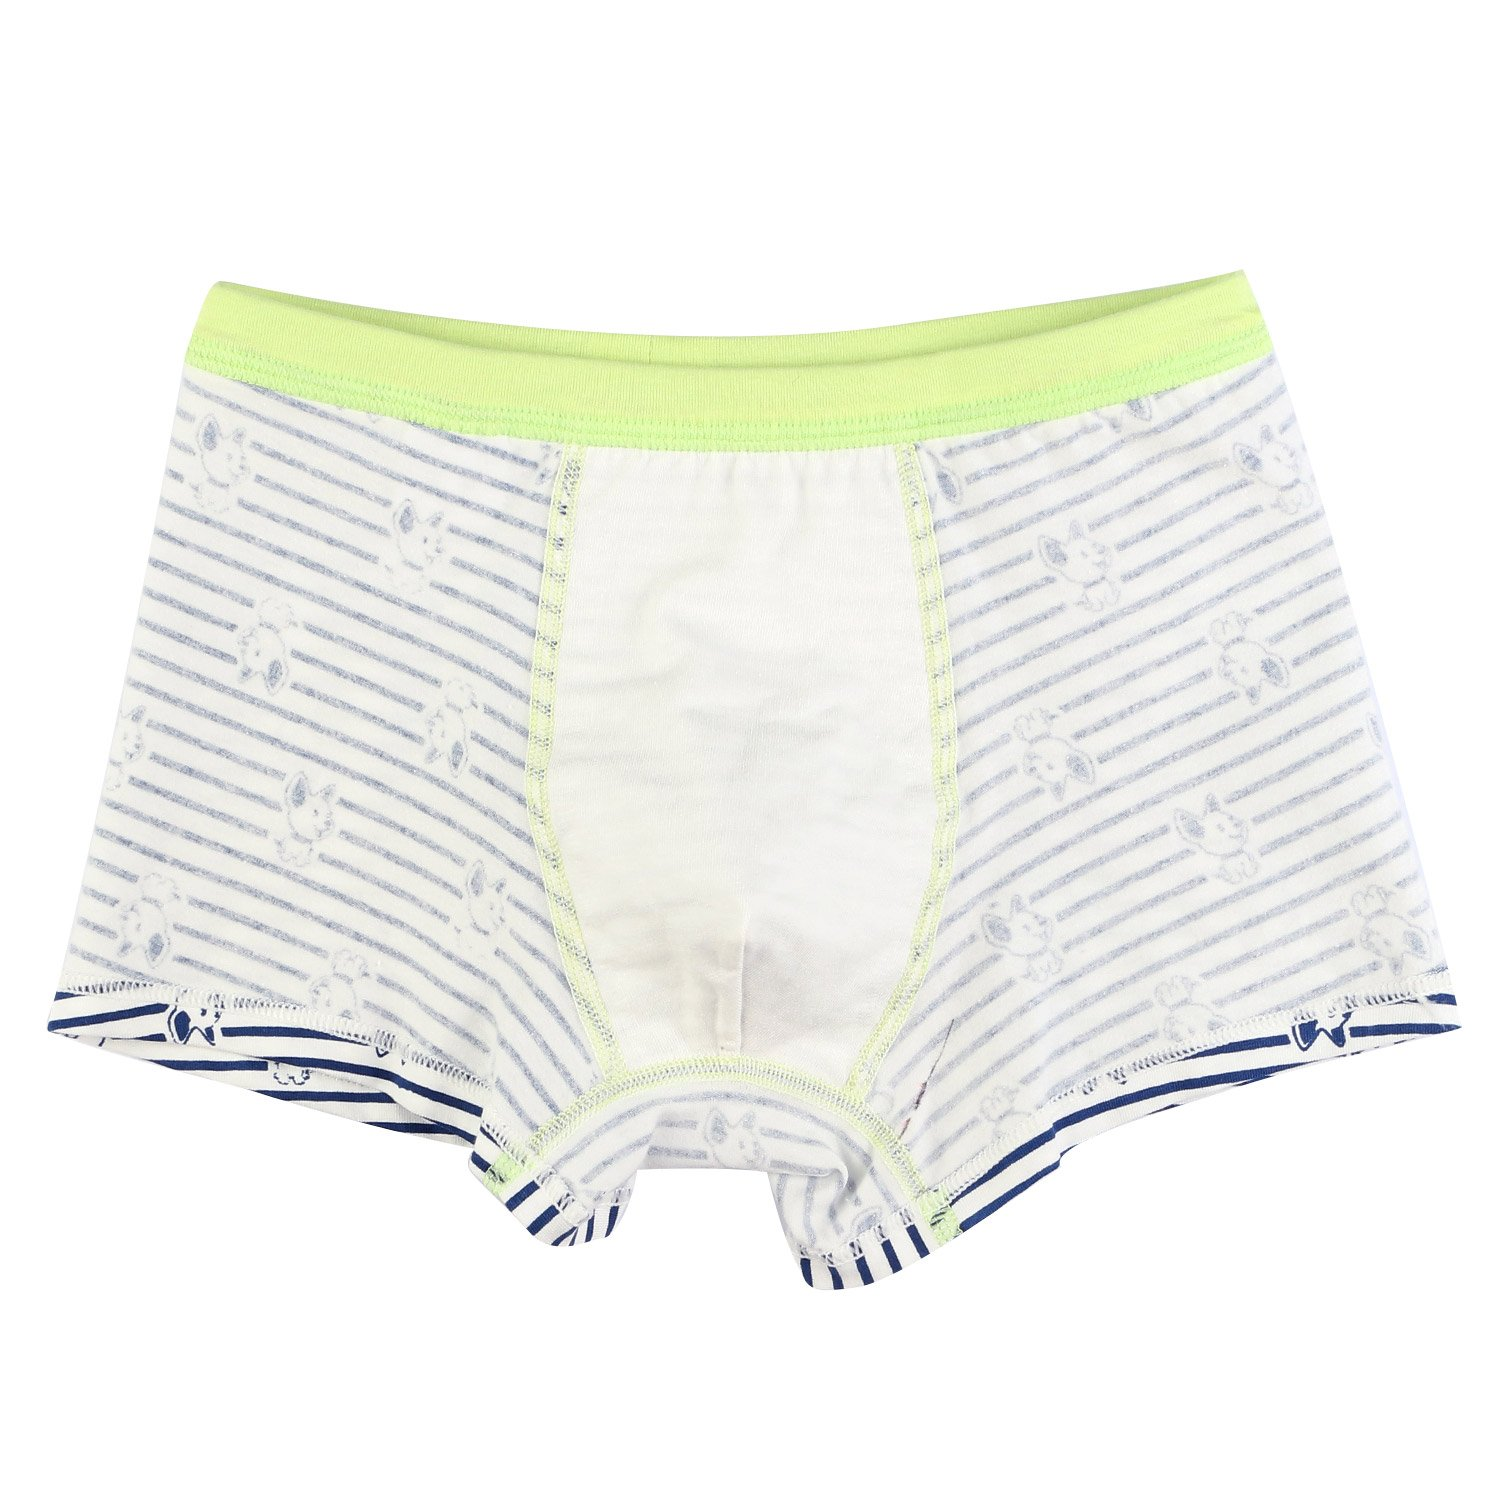 Toddler Boxer Briefs Trunk Striped Underpant for Big Boy 3 to 16 Year Old BOOPH Boys Underwear 4//5 Pack